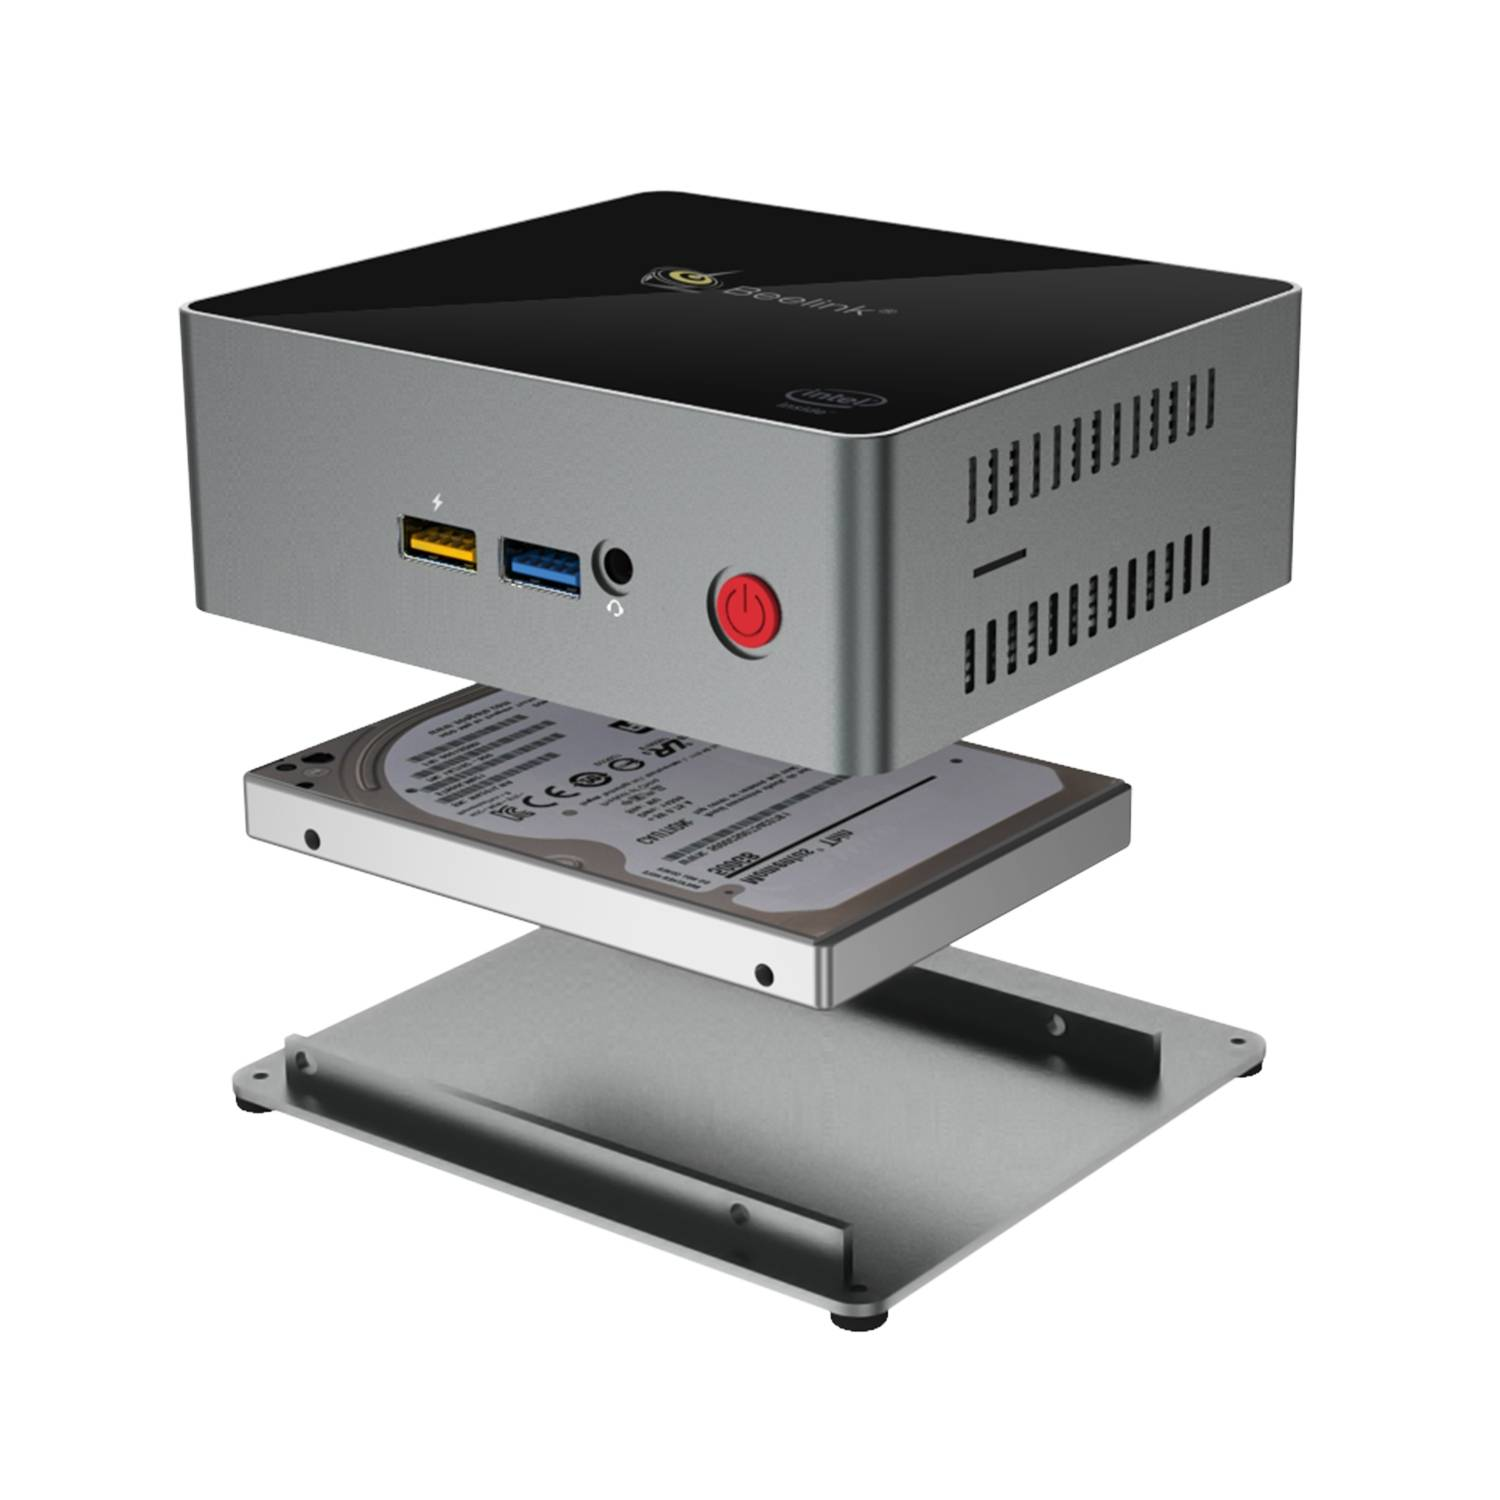 """Beelink J45 Windows 10 Mini Computer for Home or Office - Showing 2.5"""" HDD/SSD Expansion"""